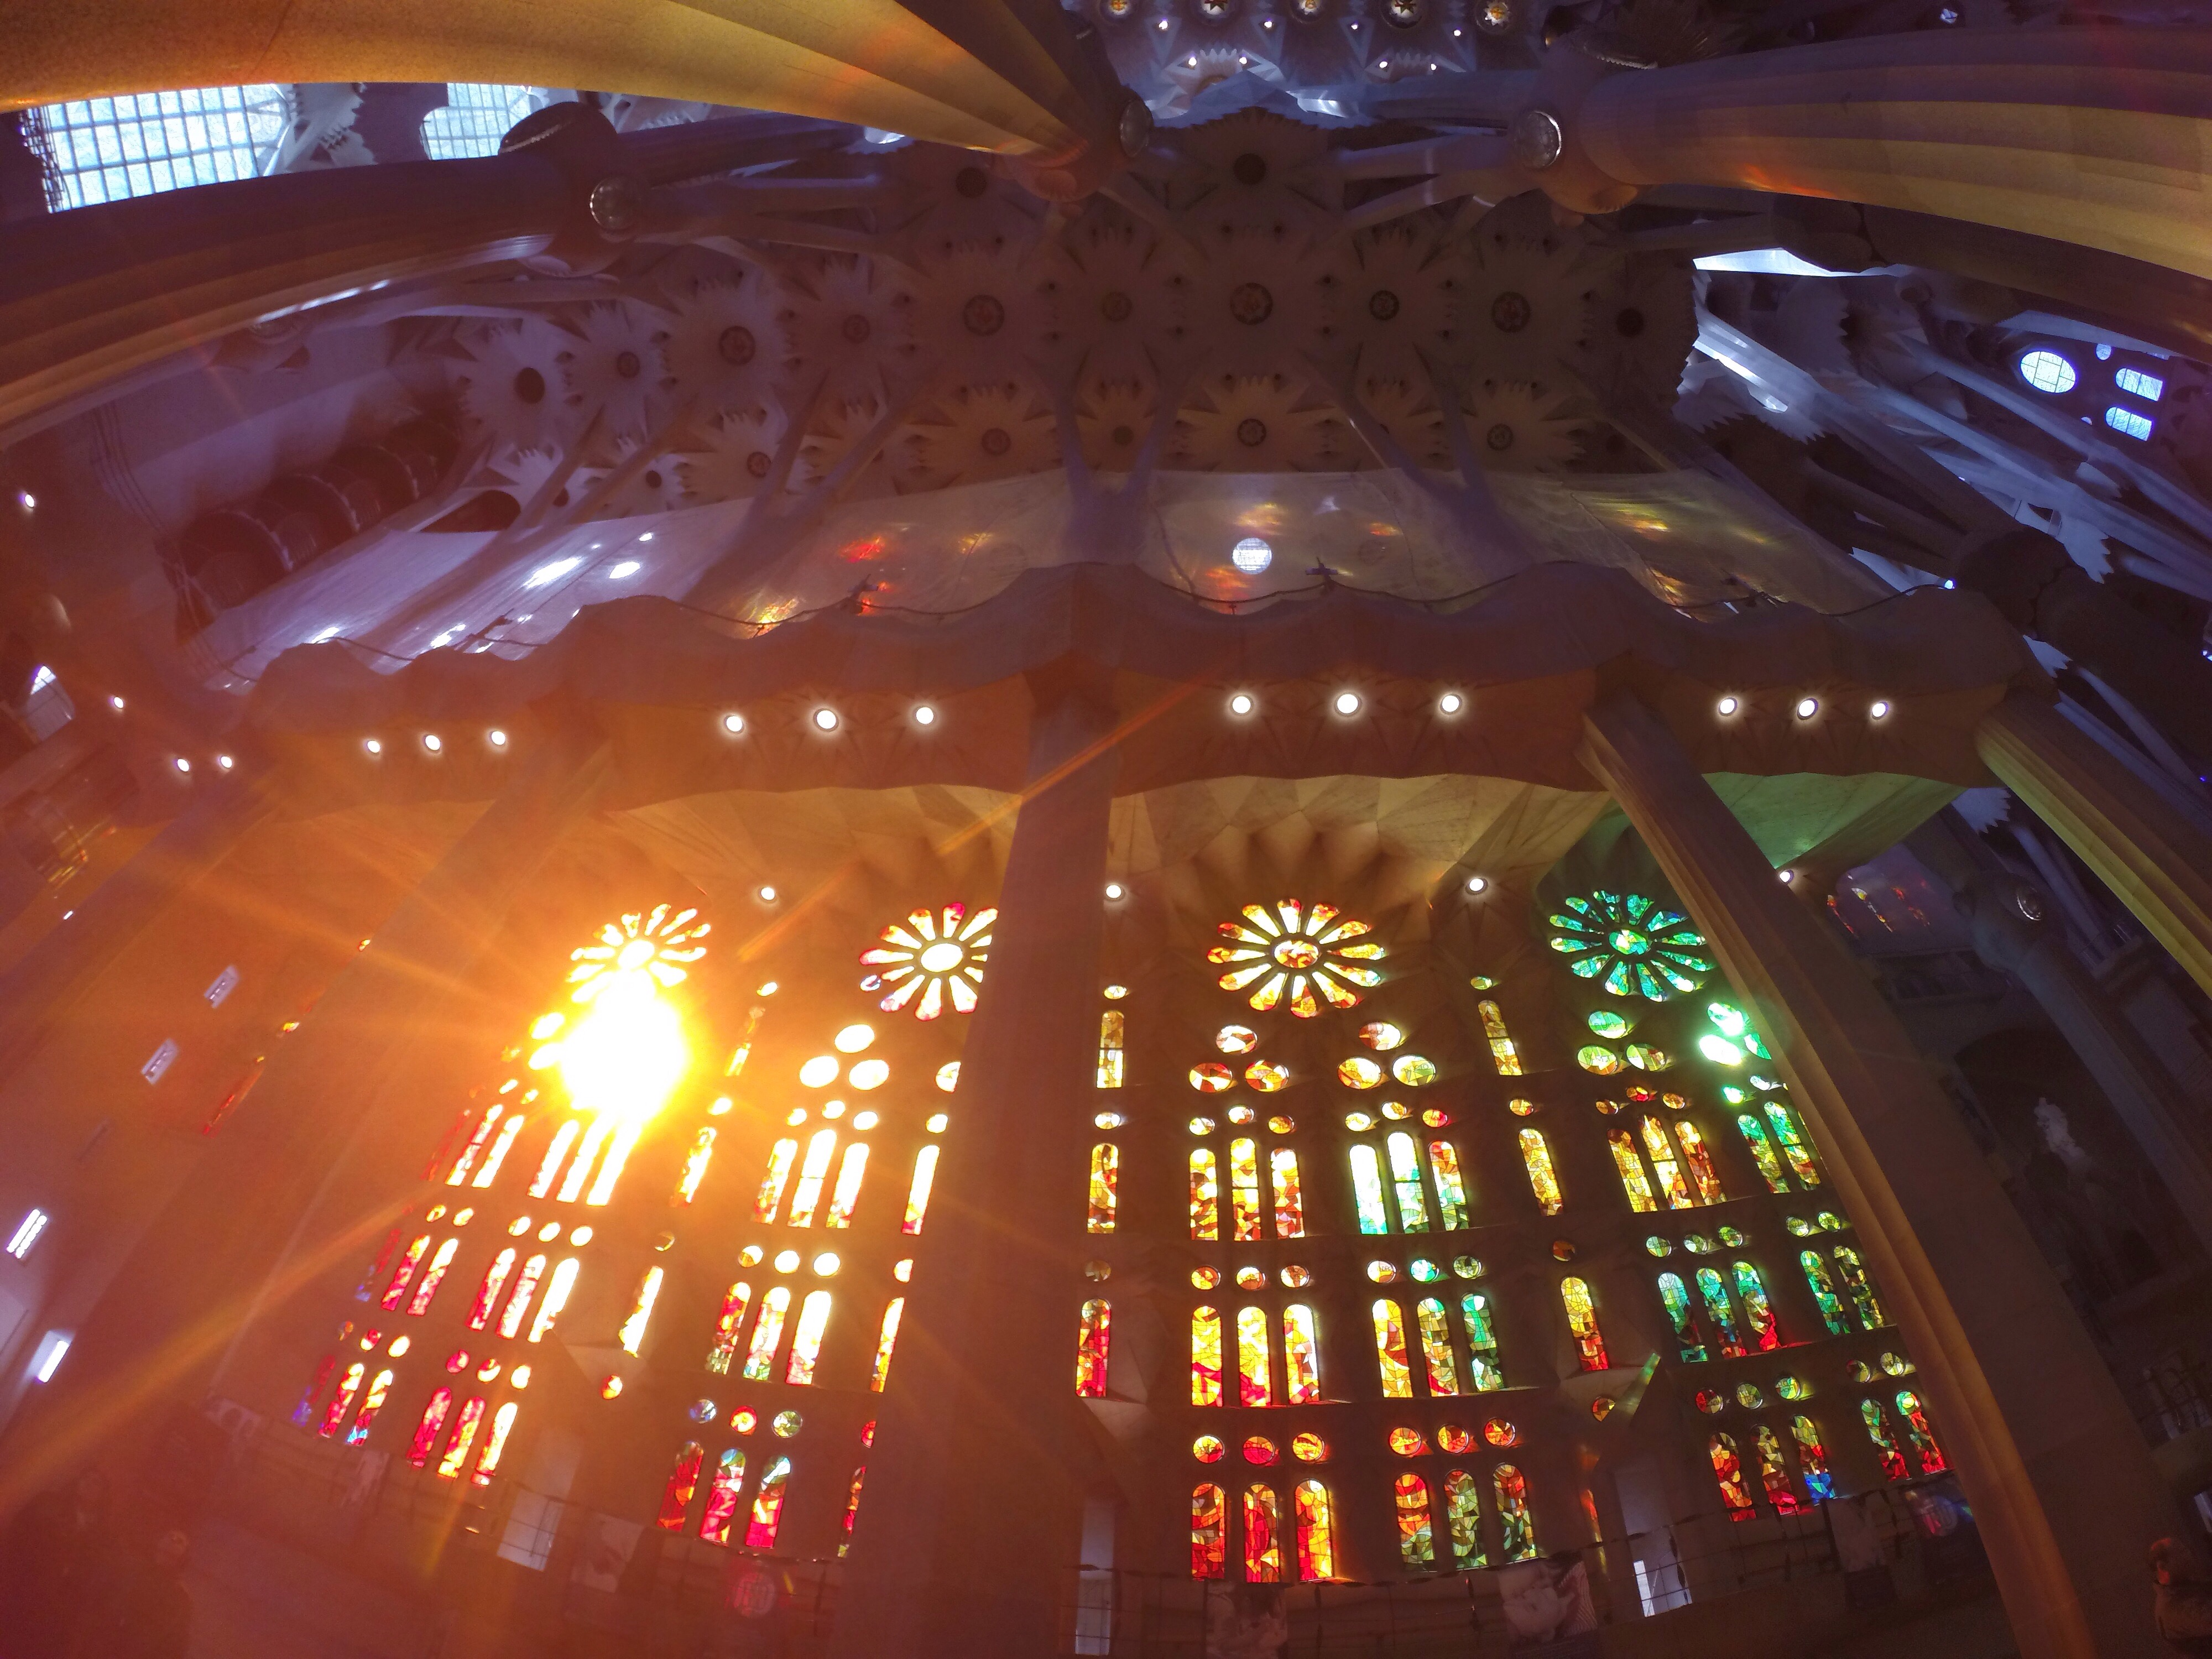 L'interno della Sagrada Familia - un weekend a Barcellona